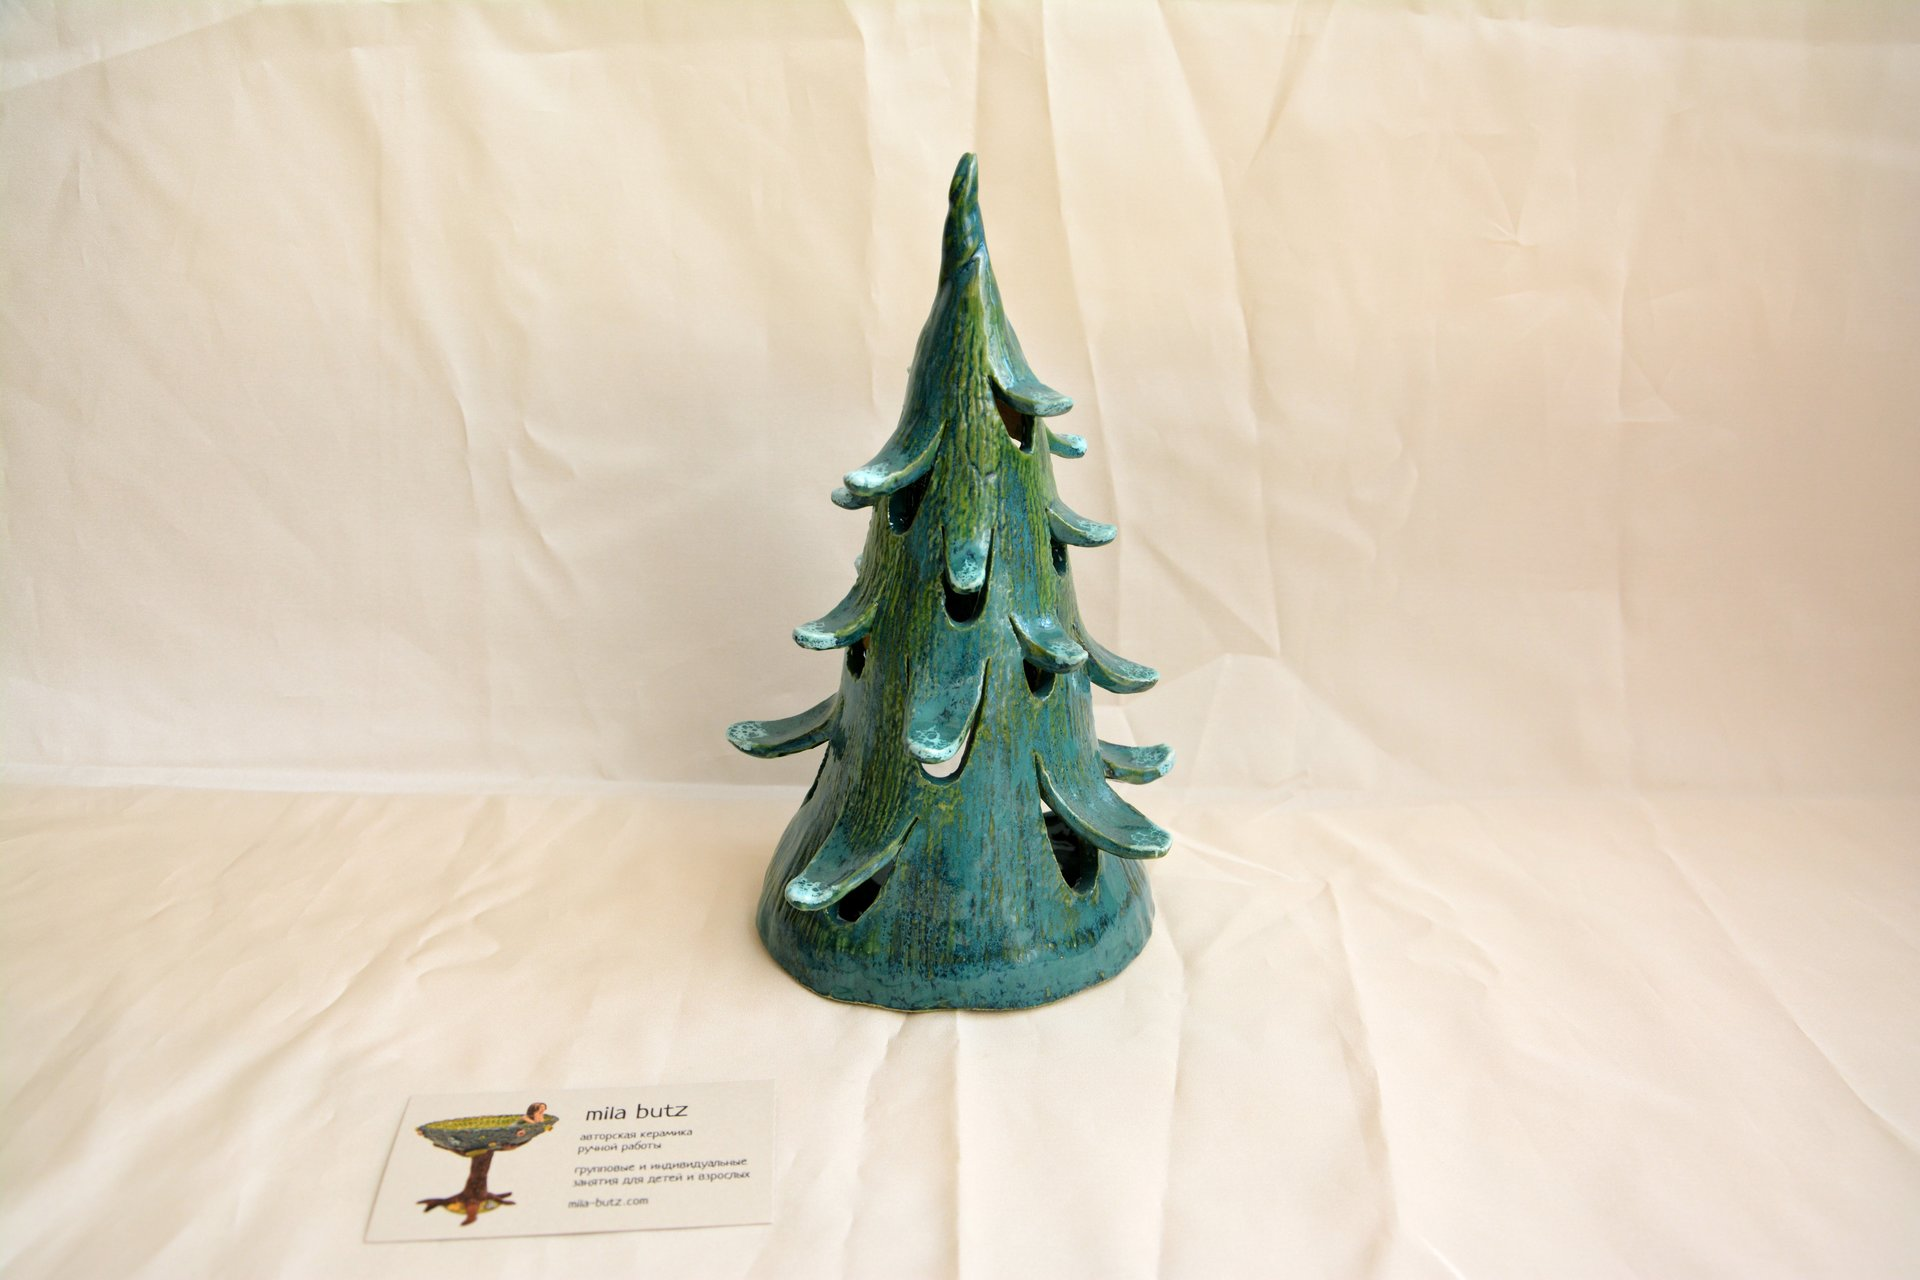 Christmas tree - Ceramic new year's decor, height - 23 cm, diameter - 12 cm, photo 1 of 2.